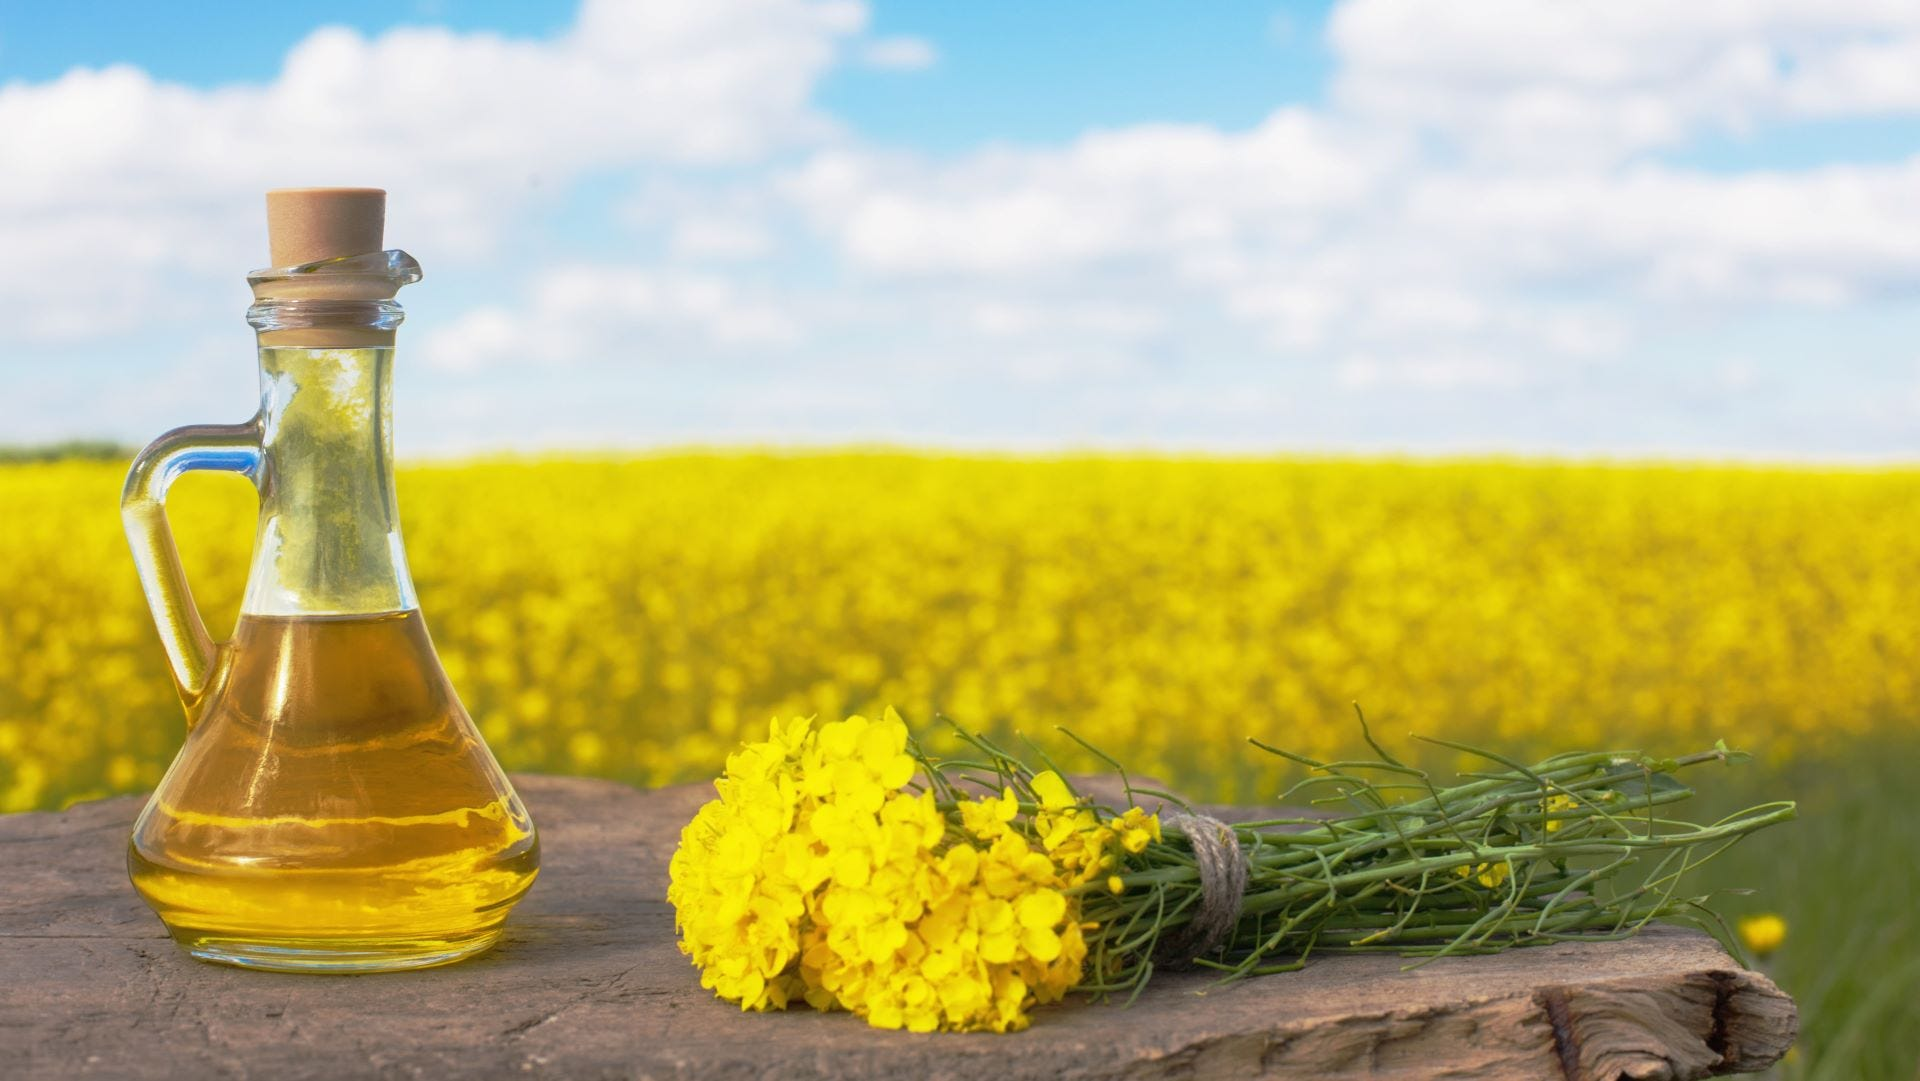 A bottle of canola oil with a field of rapeseed flowers behind it.